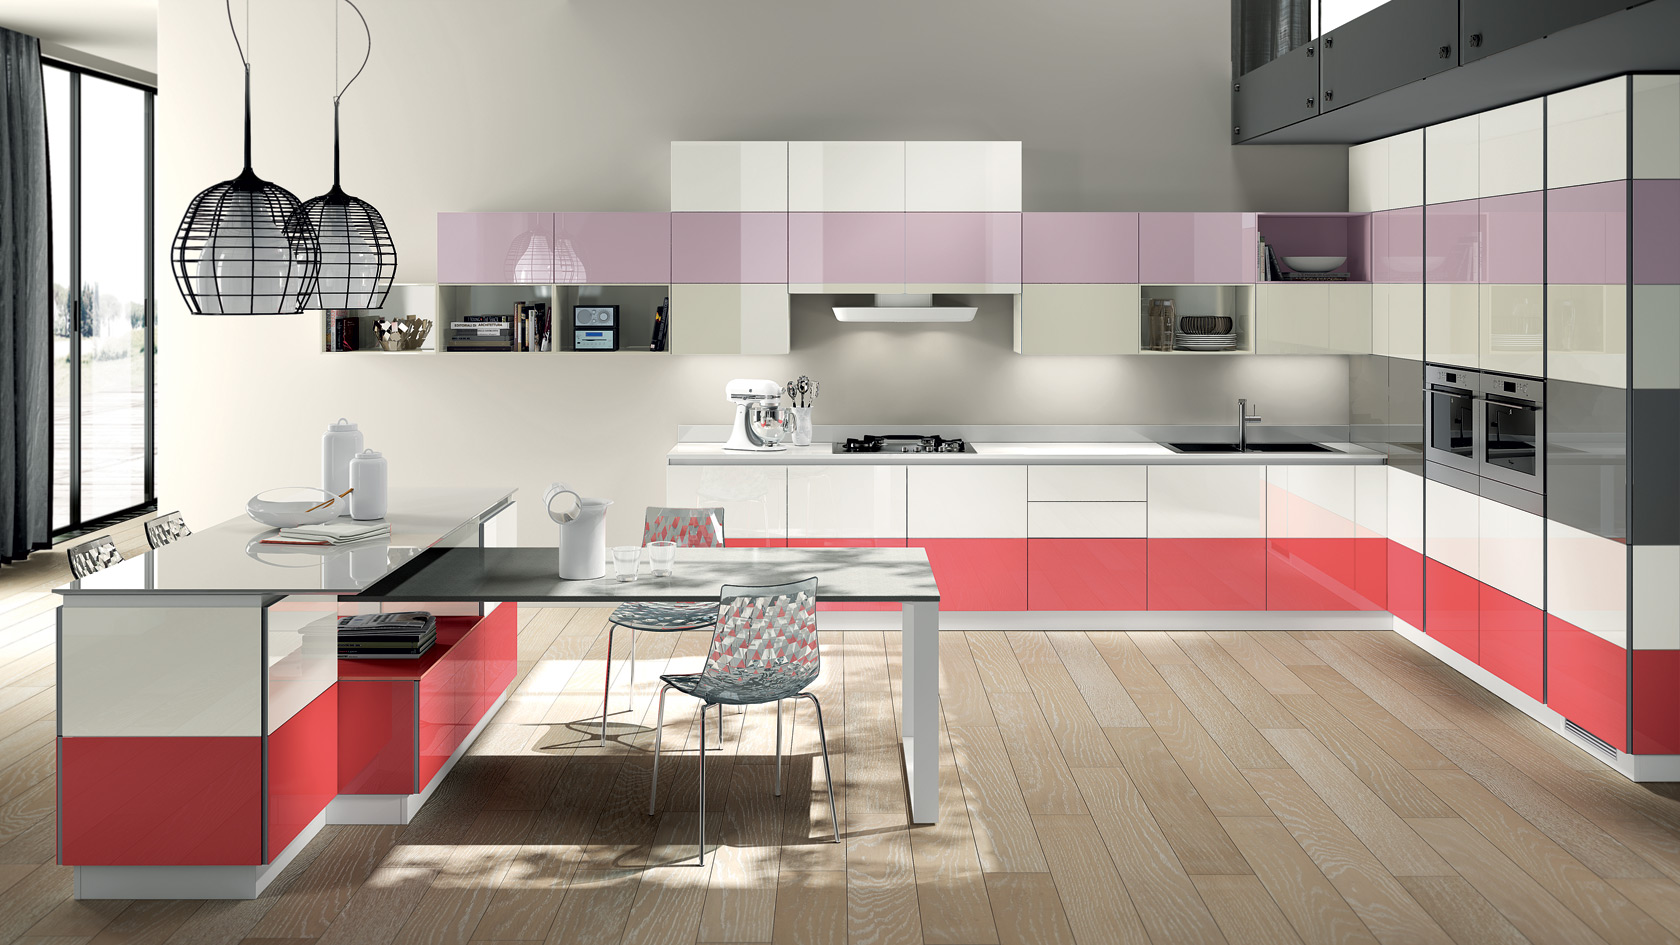 Accessori Cucine Scavolini. Scavolini Accessori Cucina With ...